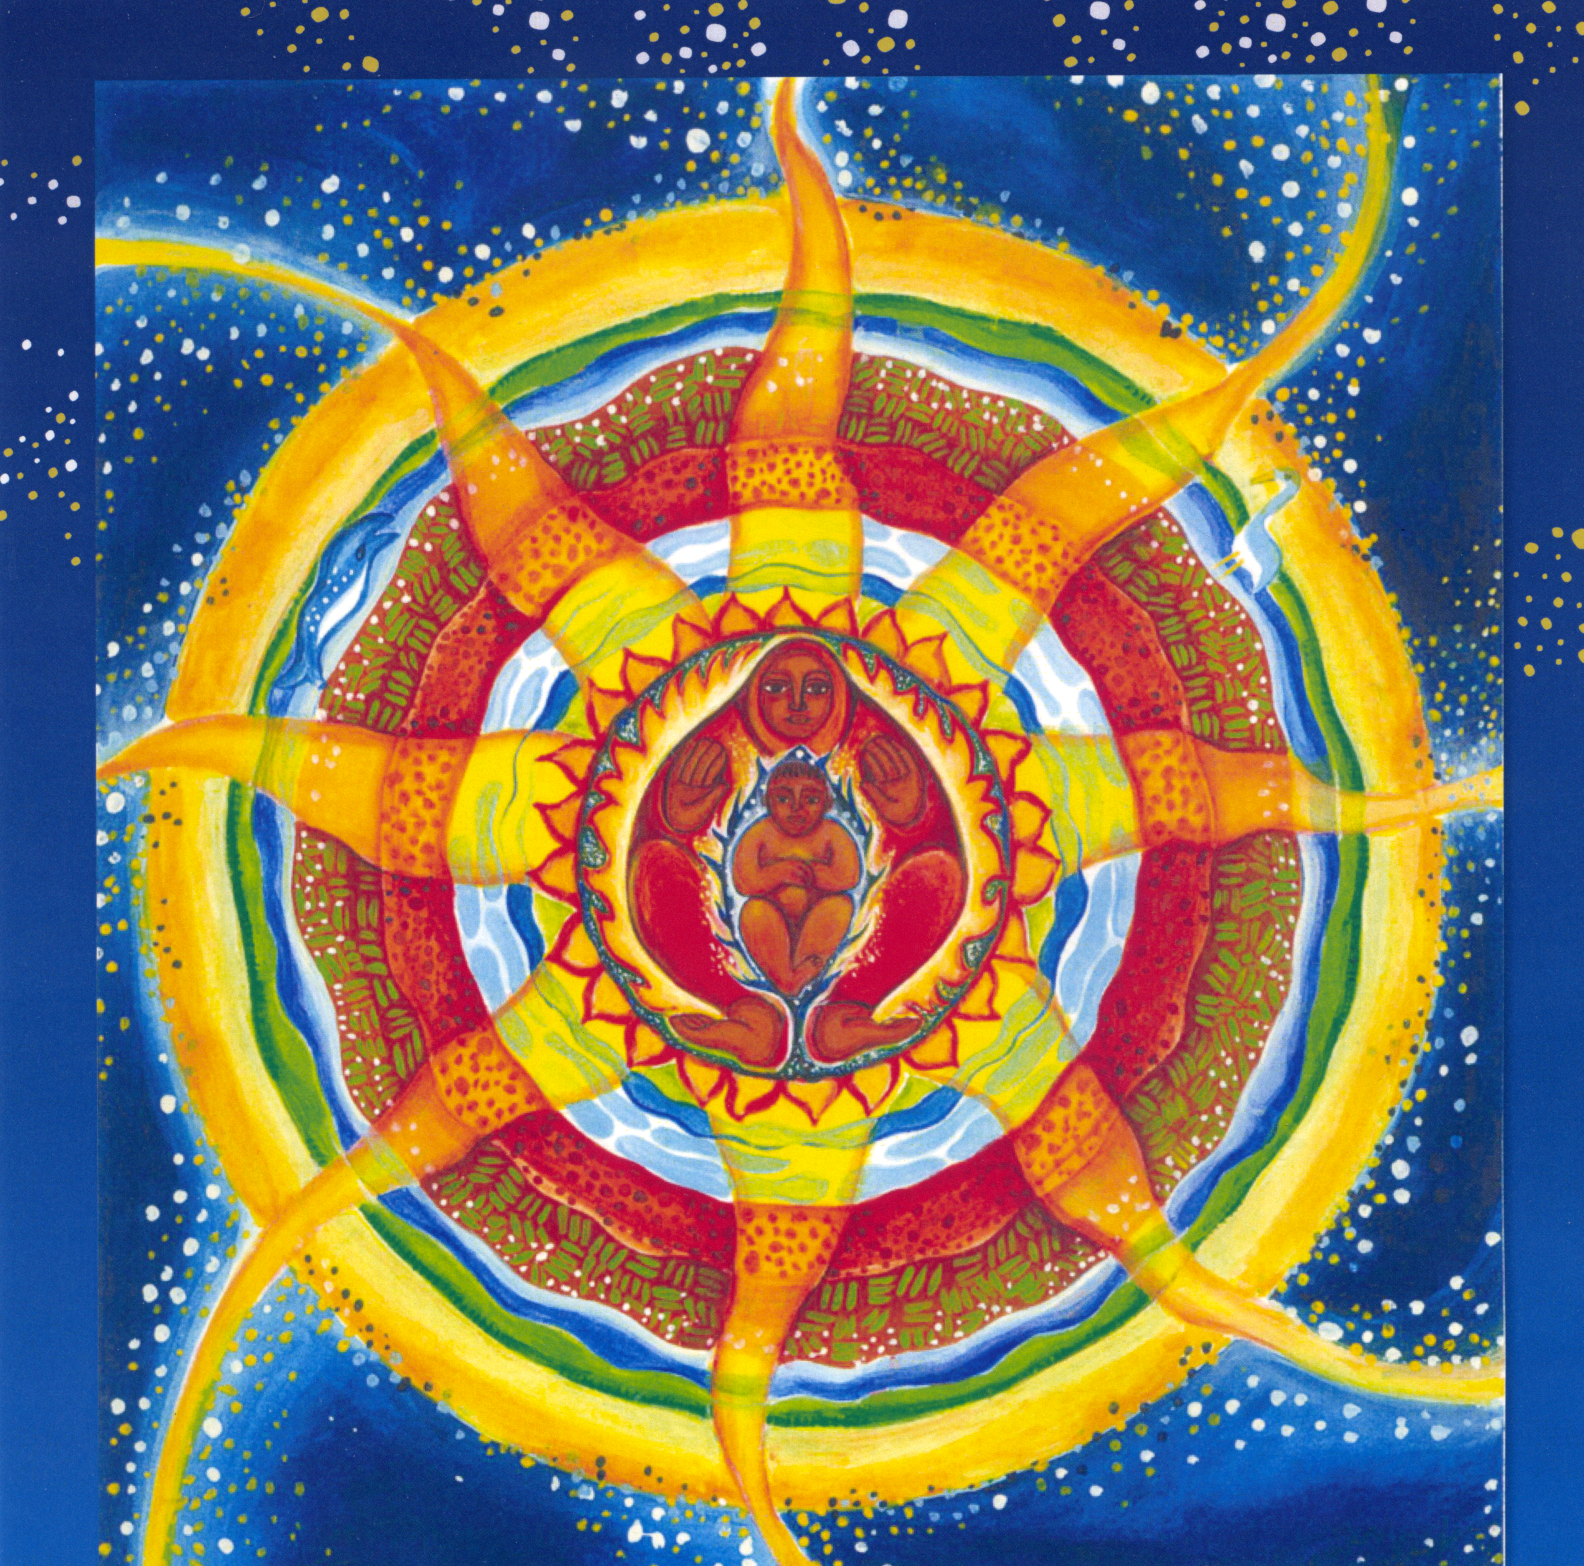 The Divine Mother Amp Child Central In The Eightfold Path